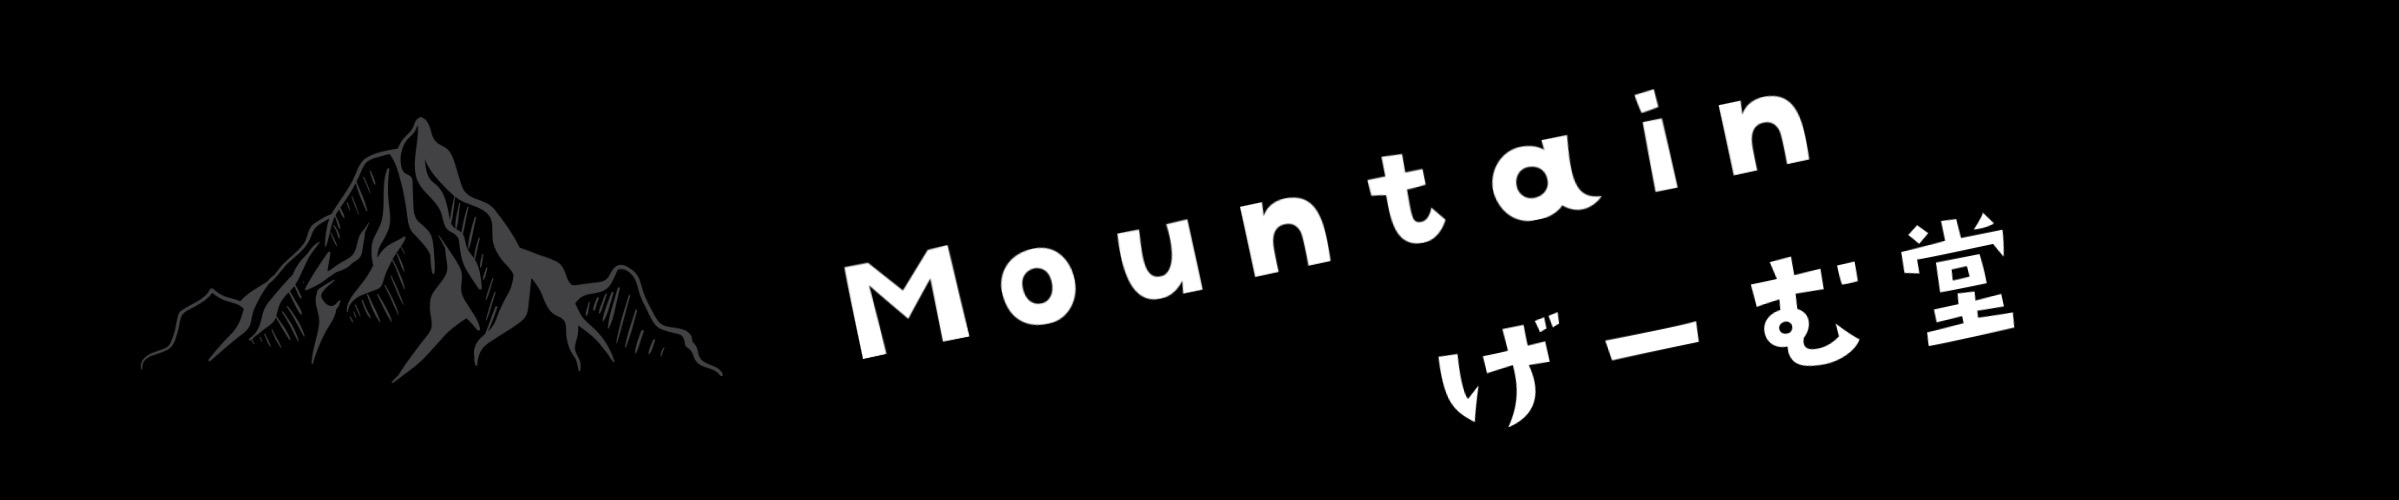 Mountainげーむ堂